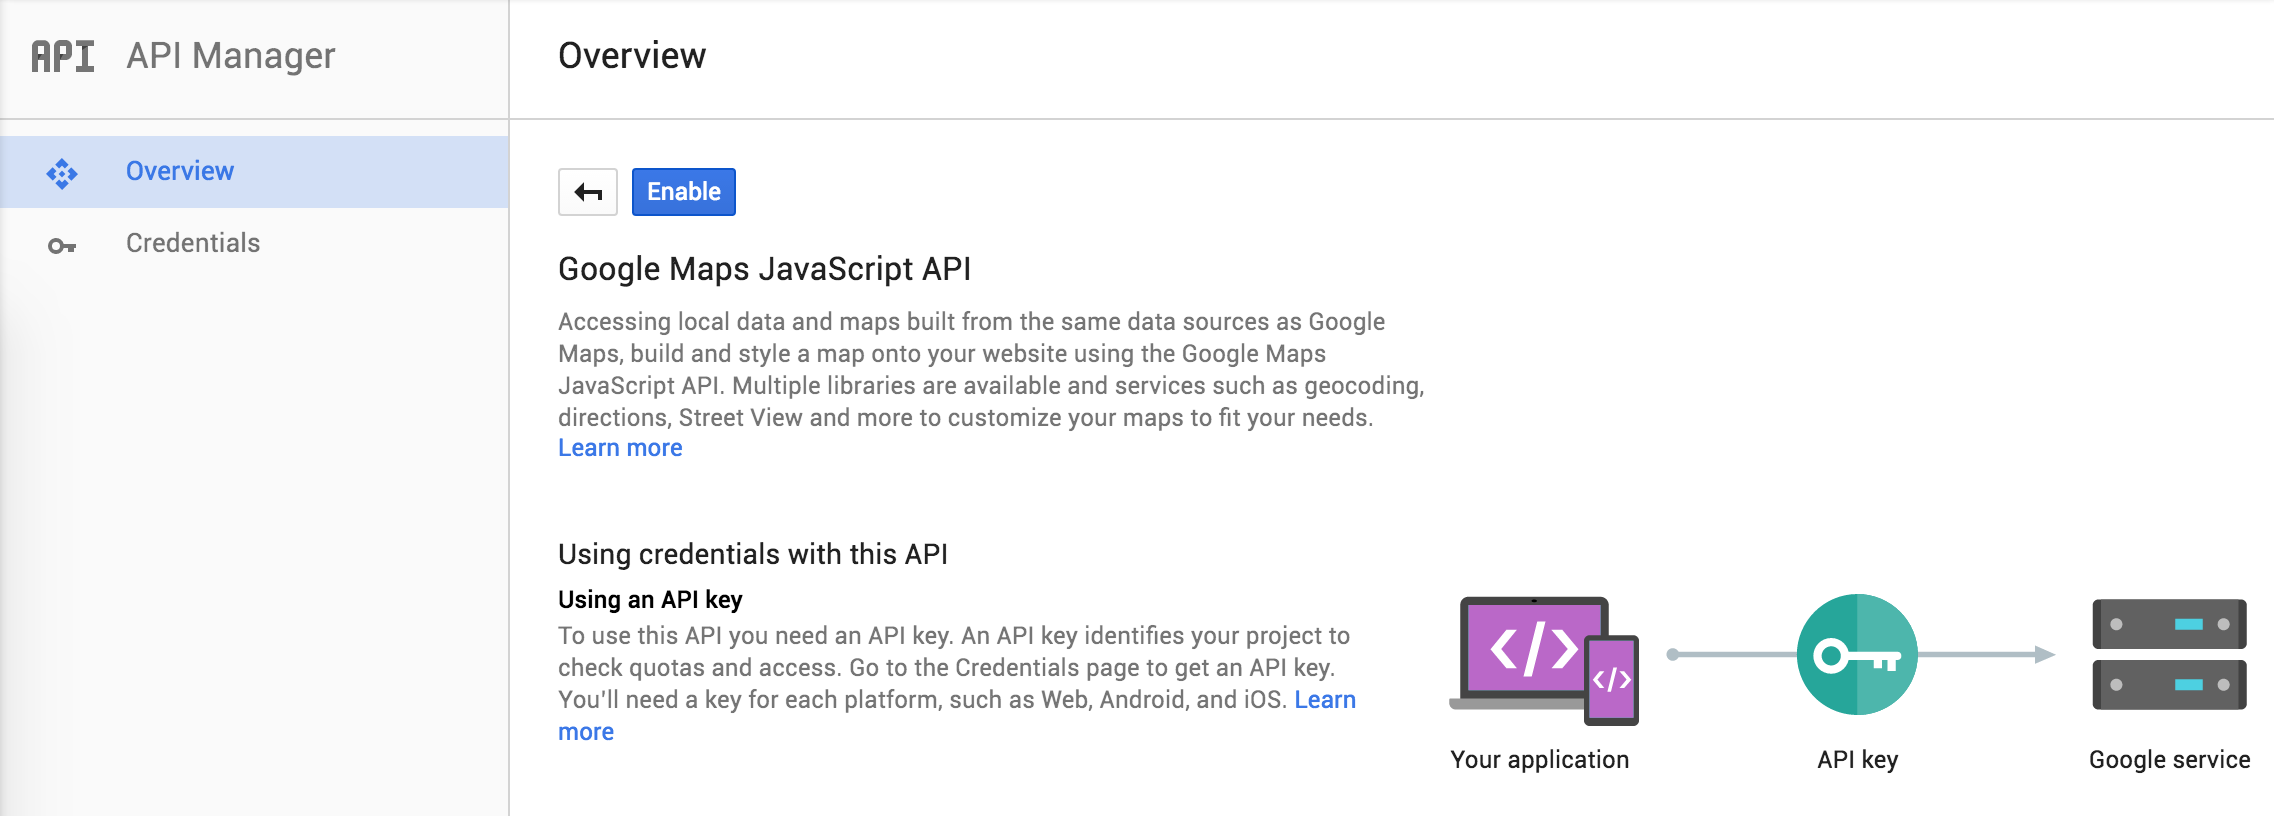 google maps javascript api  overview. setting up your google maps api key  the events calendar